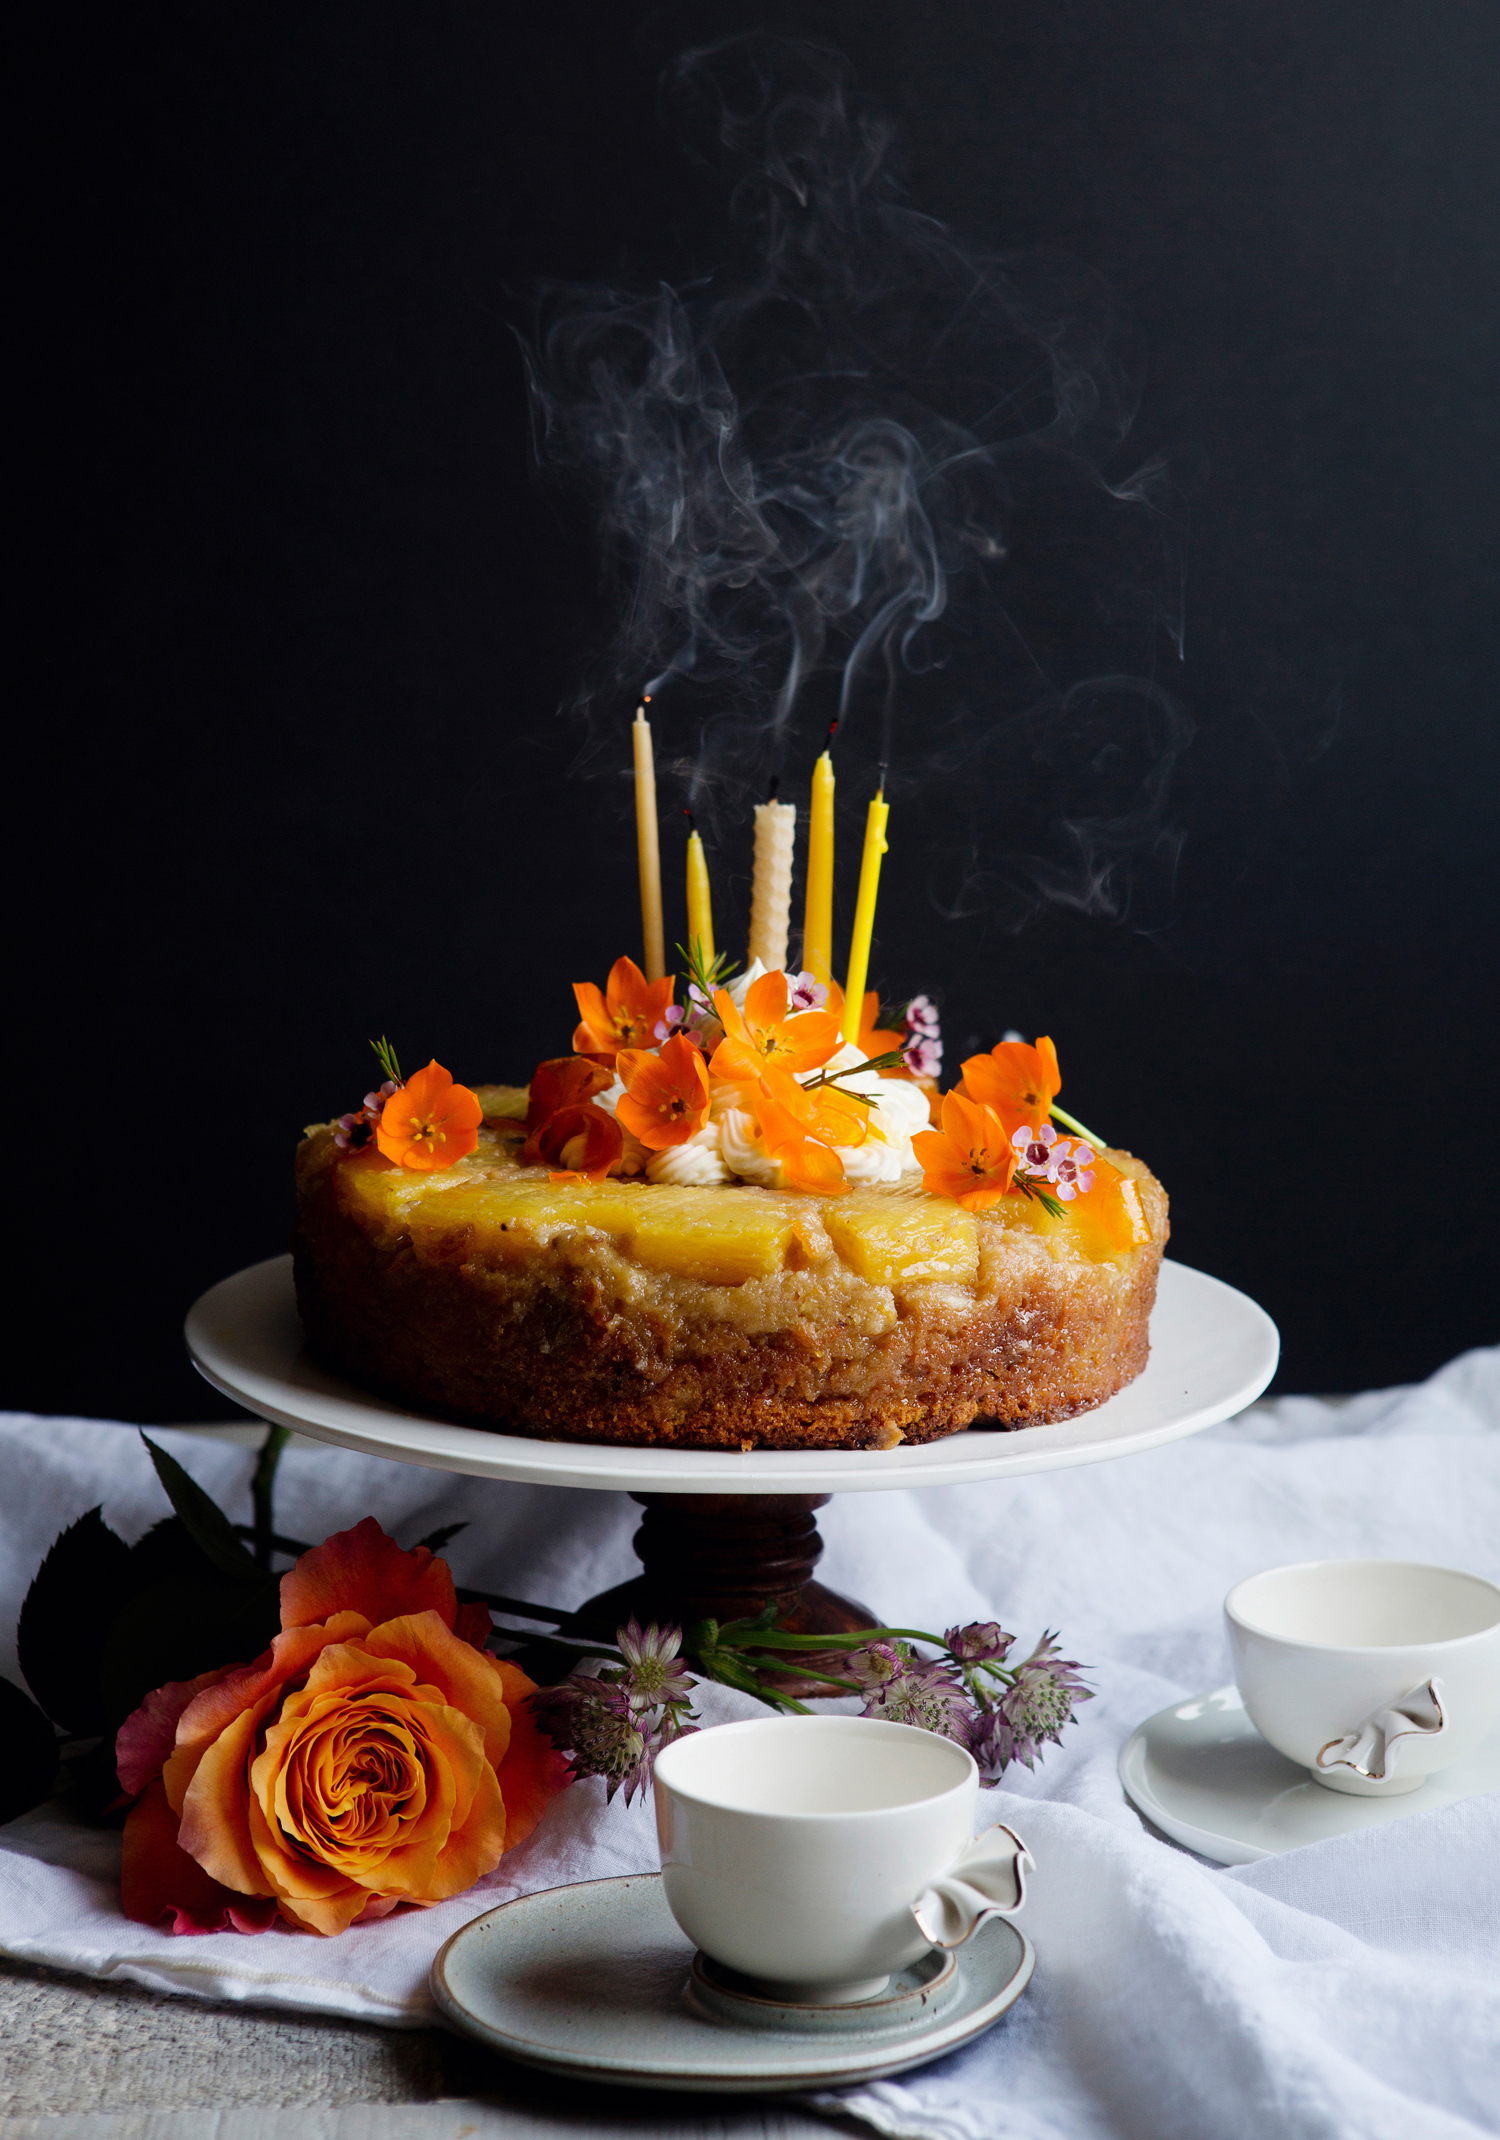 Surprising Carrot Upside Down Pineapple Cake Trois Fois Par Jour Funny Birthday Cards Online Bapapcheapnameinfo